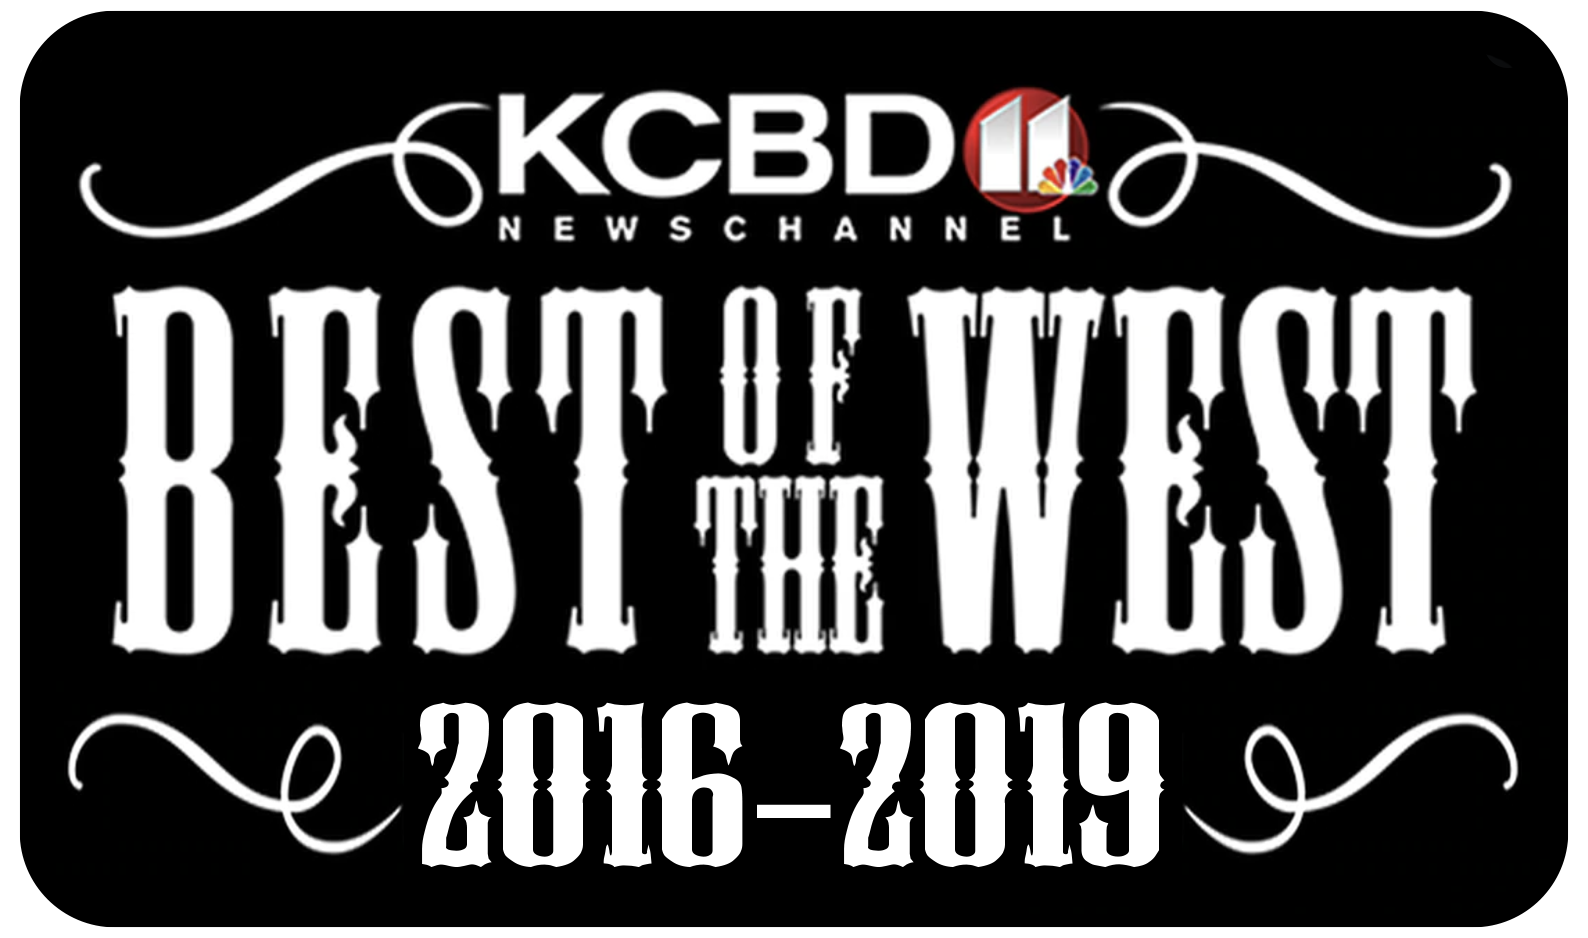 Best Of The West Home Theater Lubbock